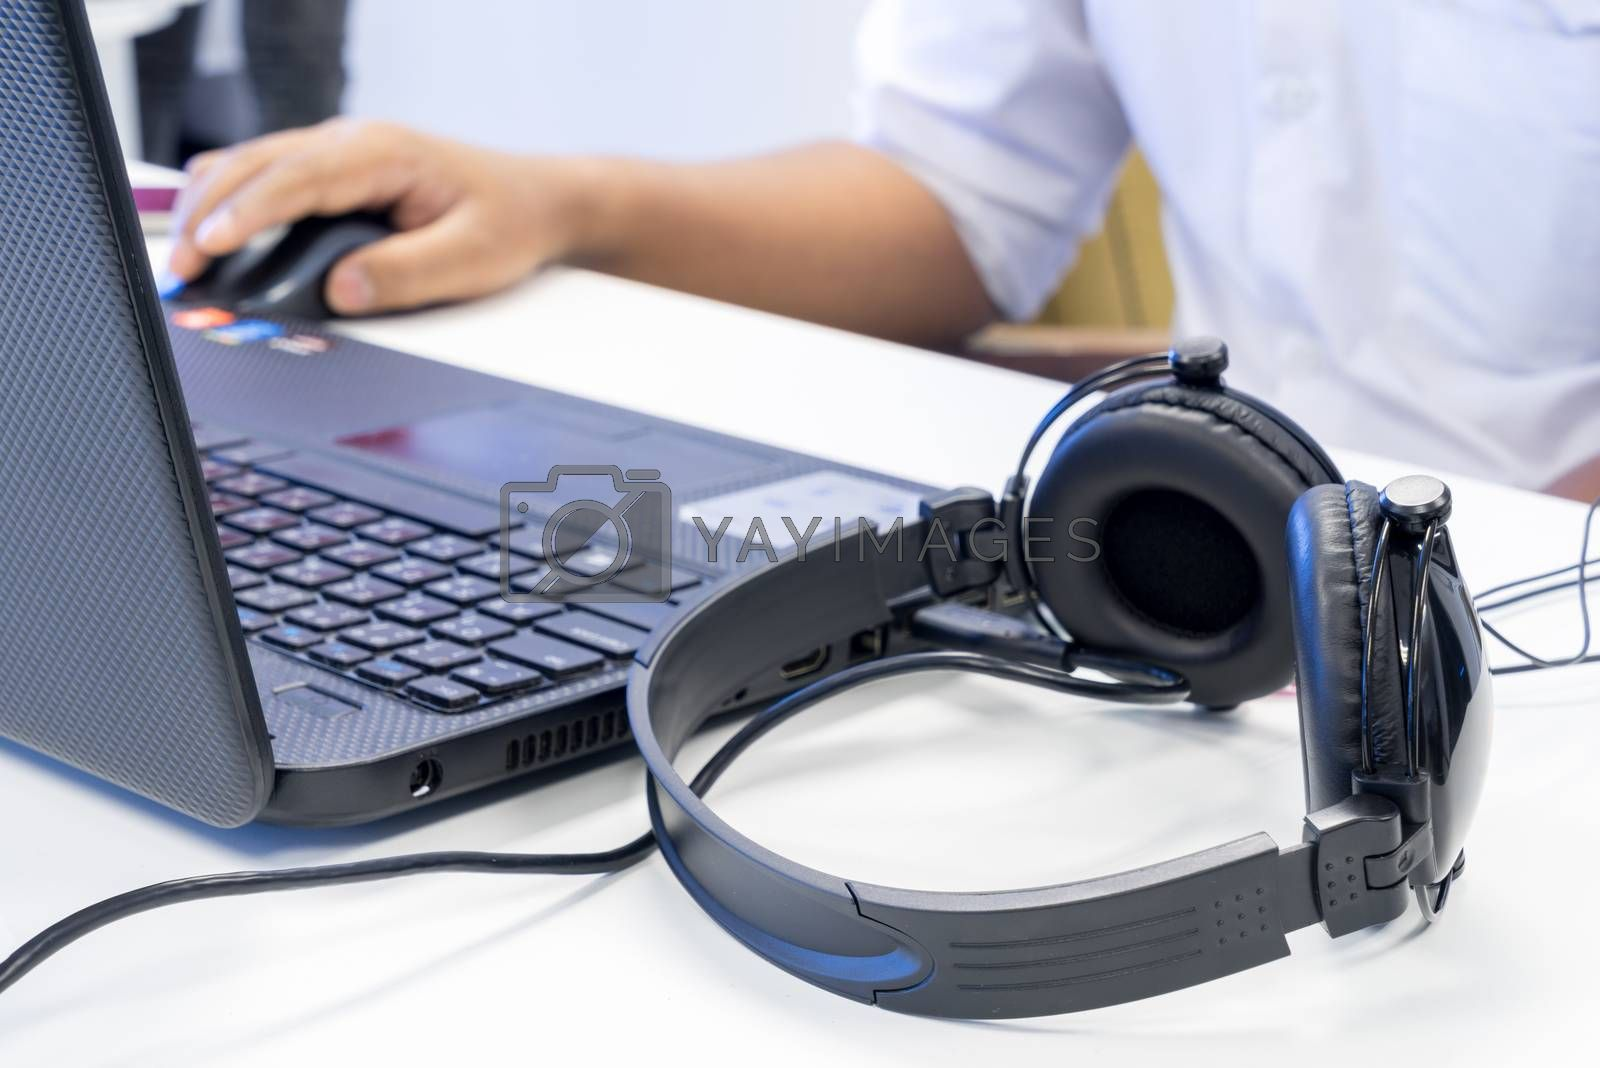 Royalty free image of Man hand using keyboard and mouse to control laptop with headpho by iamway